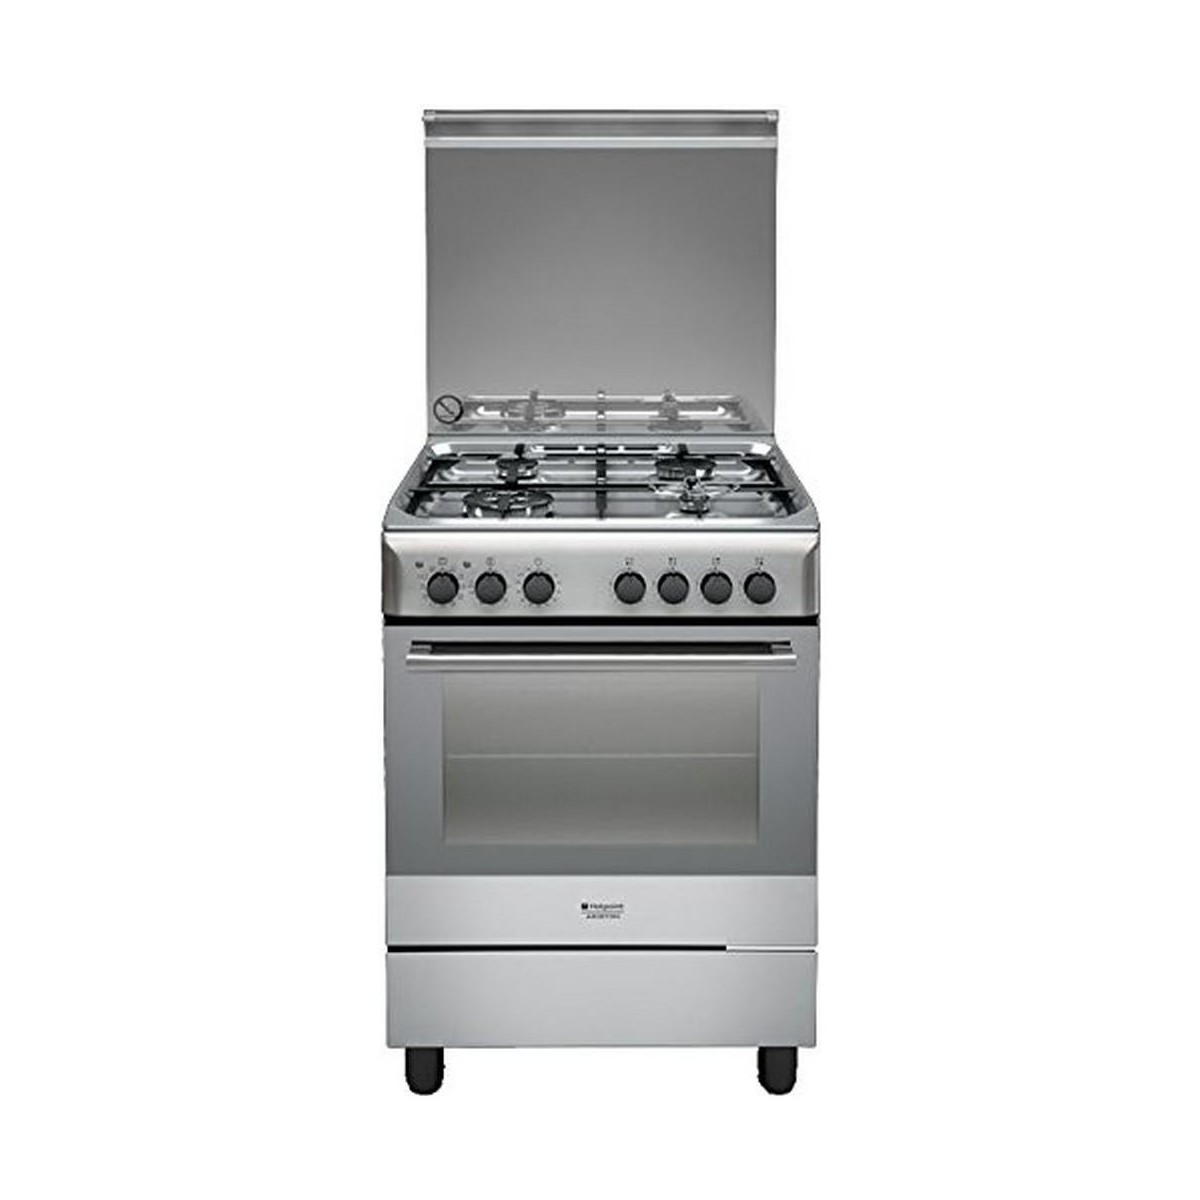 Lavasciuga A Gas Cucina Hotpoint Ariston H6tmh2af X 60x60 Con Forno